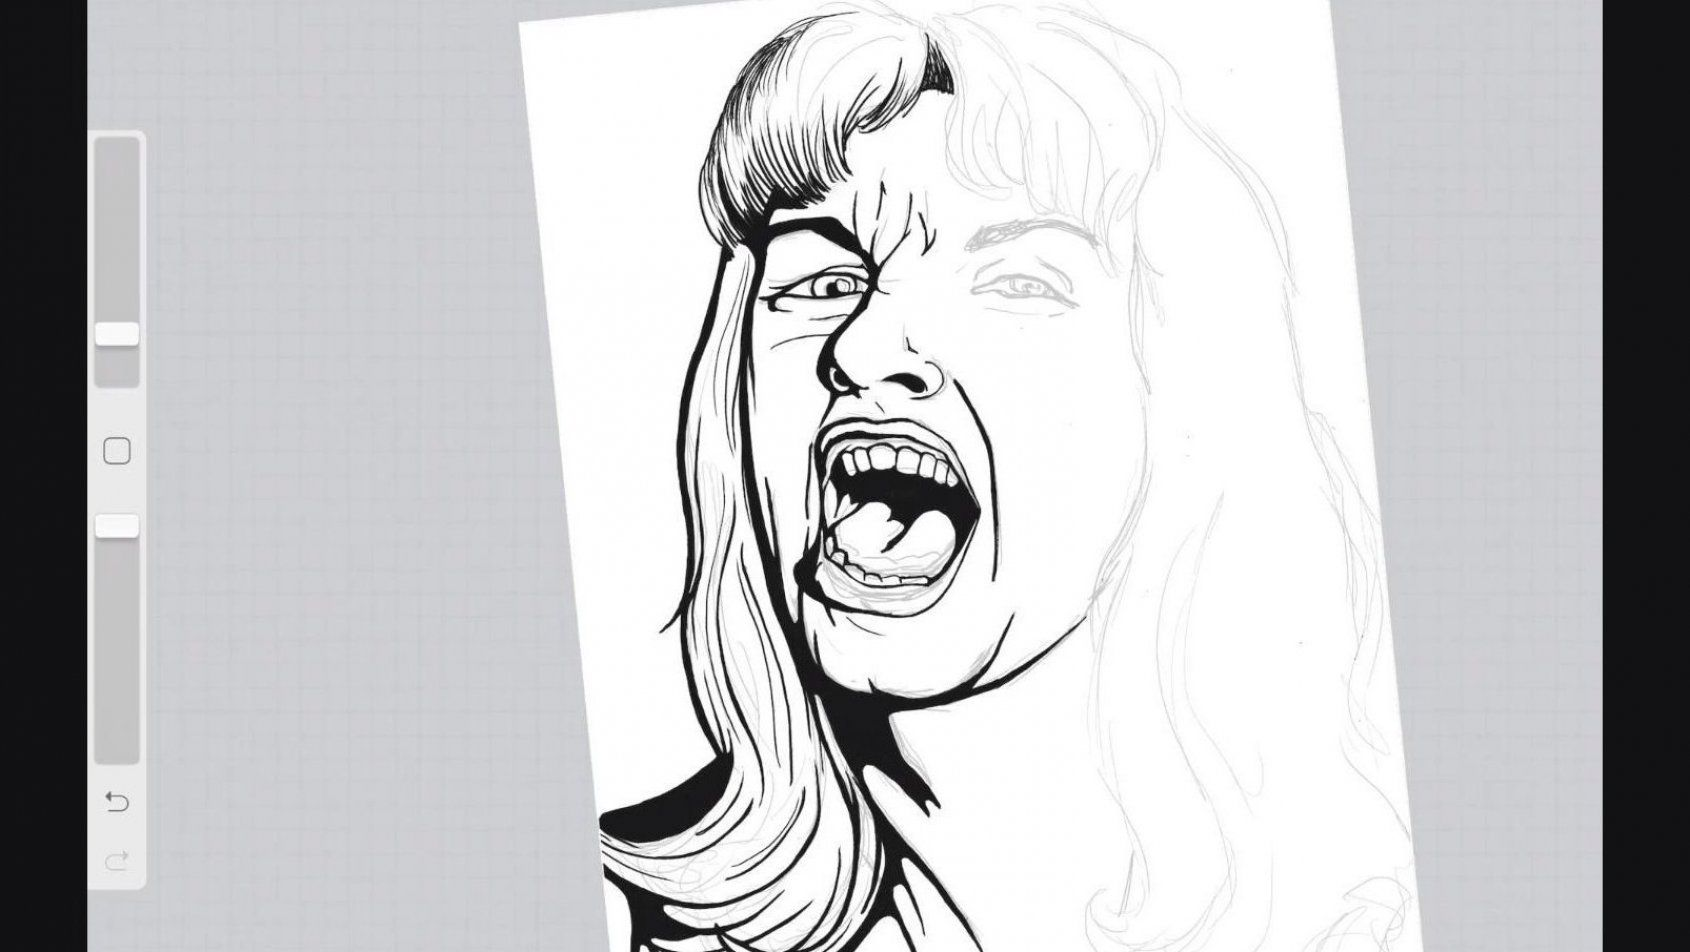 Process video of the line work and outline being done  Original illustration artwork in progress  Character art inspired by the series Twin Peaks  All Rights Reserved   AD Designs  Check out the link and follow me for more artwork  #addesigns #illustration #digitalart #digitalillustration #drawing #illustrationartists #linework #outline #ink #characterart #portrait #scream #lipstick #bangs #processvideo #artinprogress #popart #popculture #twinpeaks #homecoming #laurapalmer #culture #tvshows